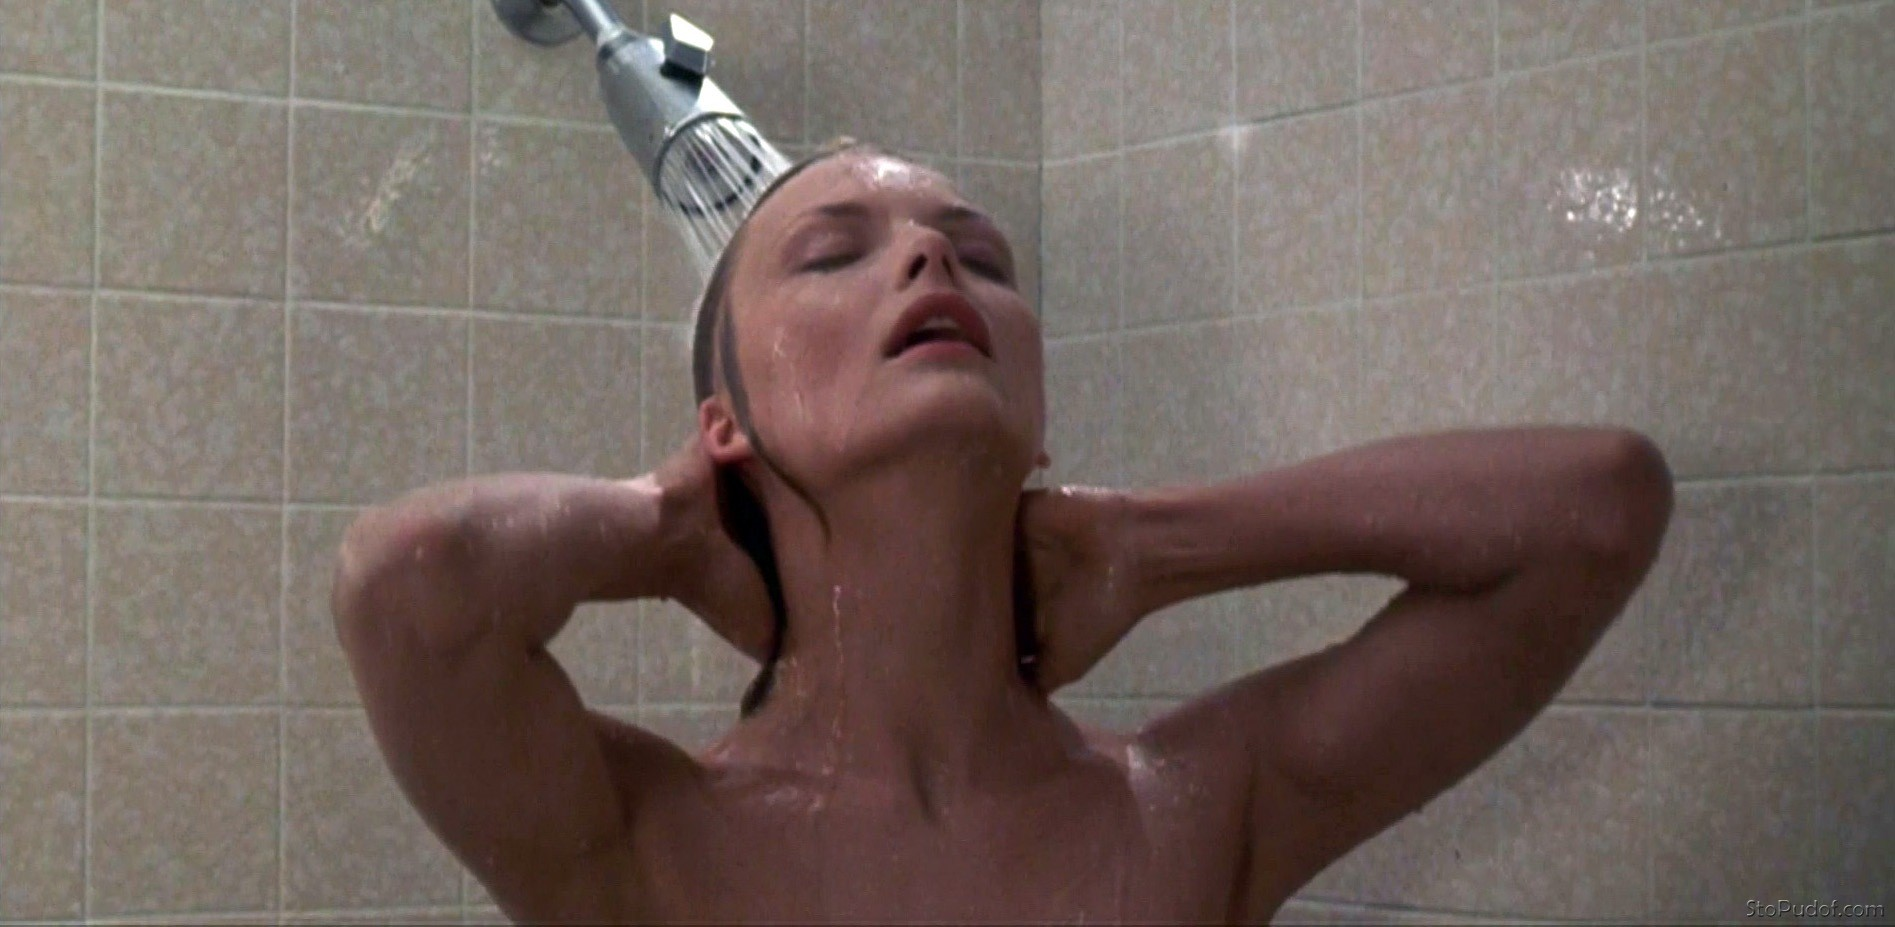 leaked naked pictures Michelle Pfeiffer - UkPhotoSafari